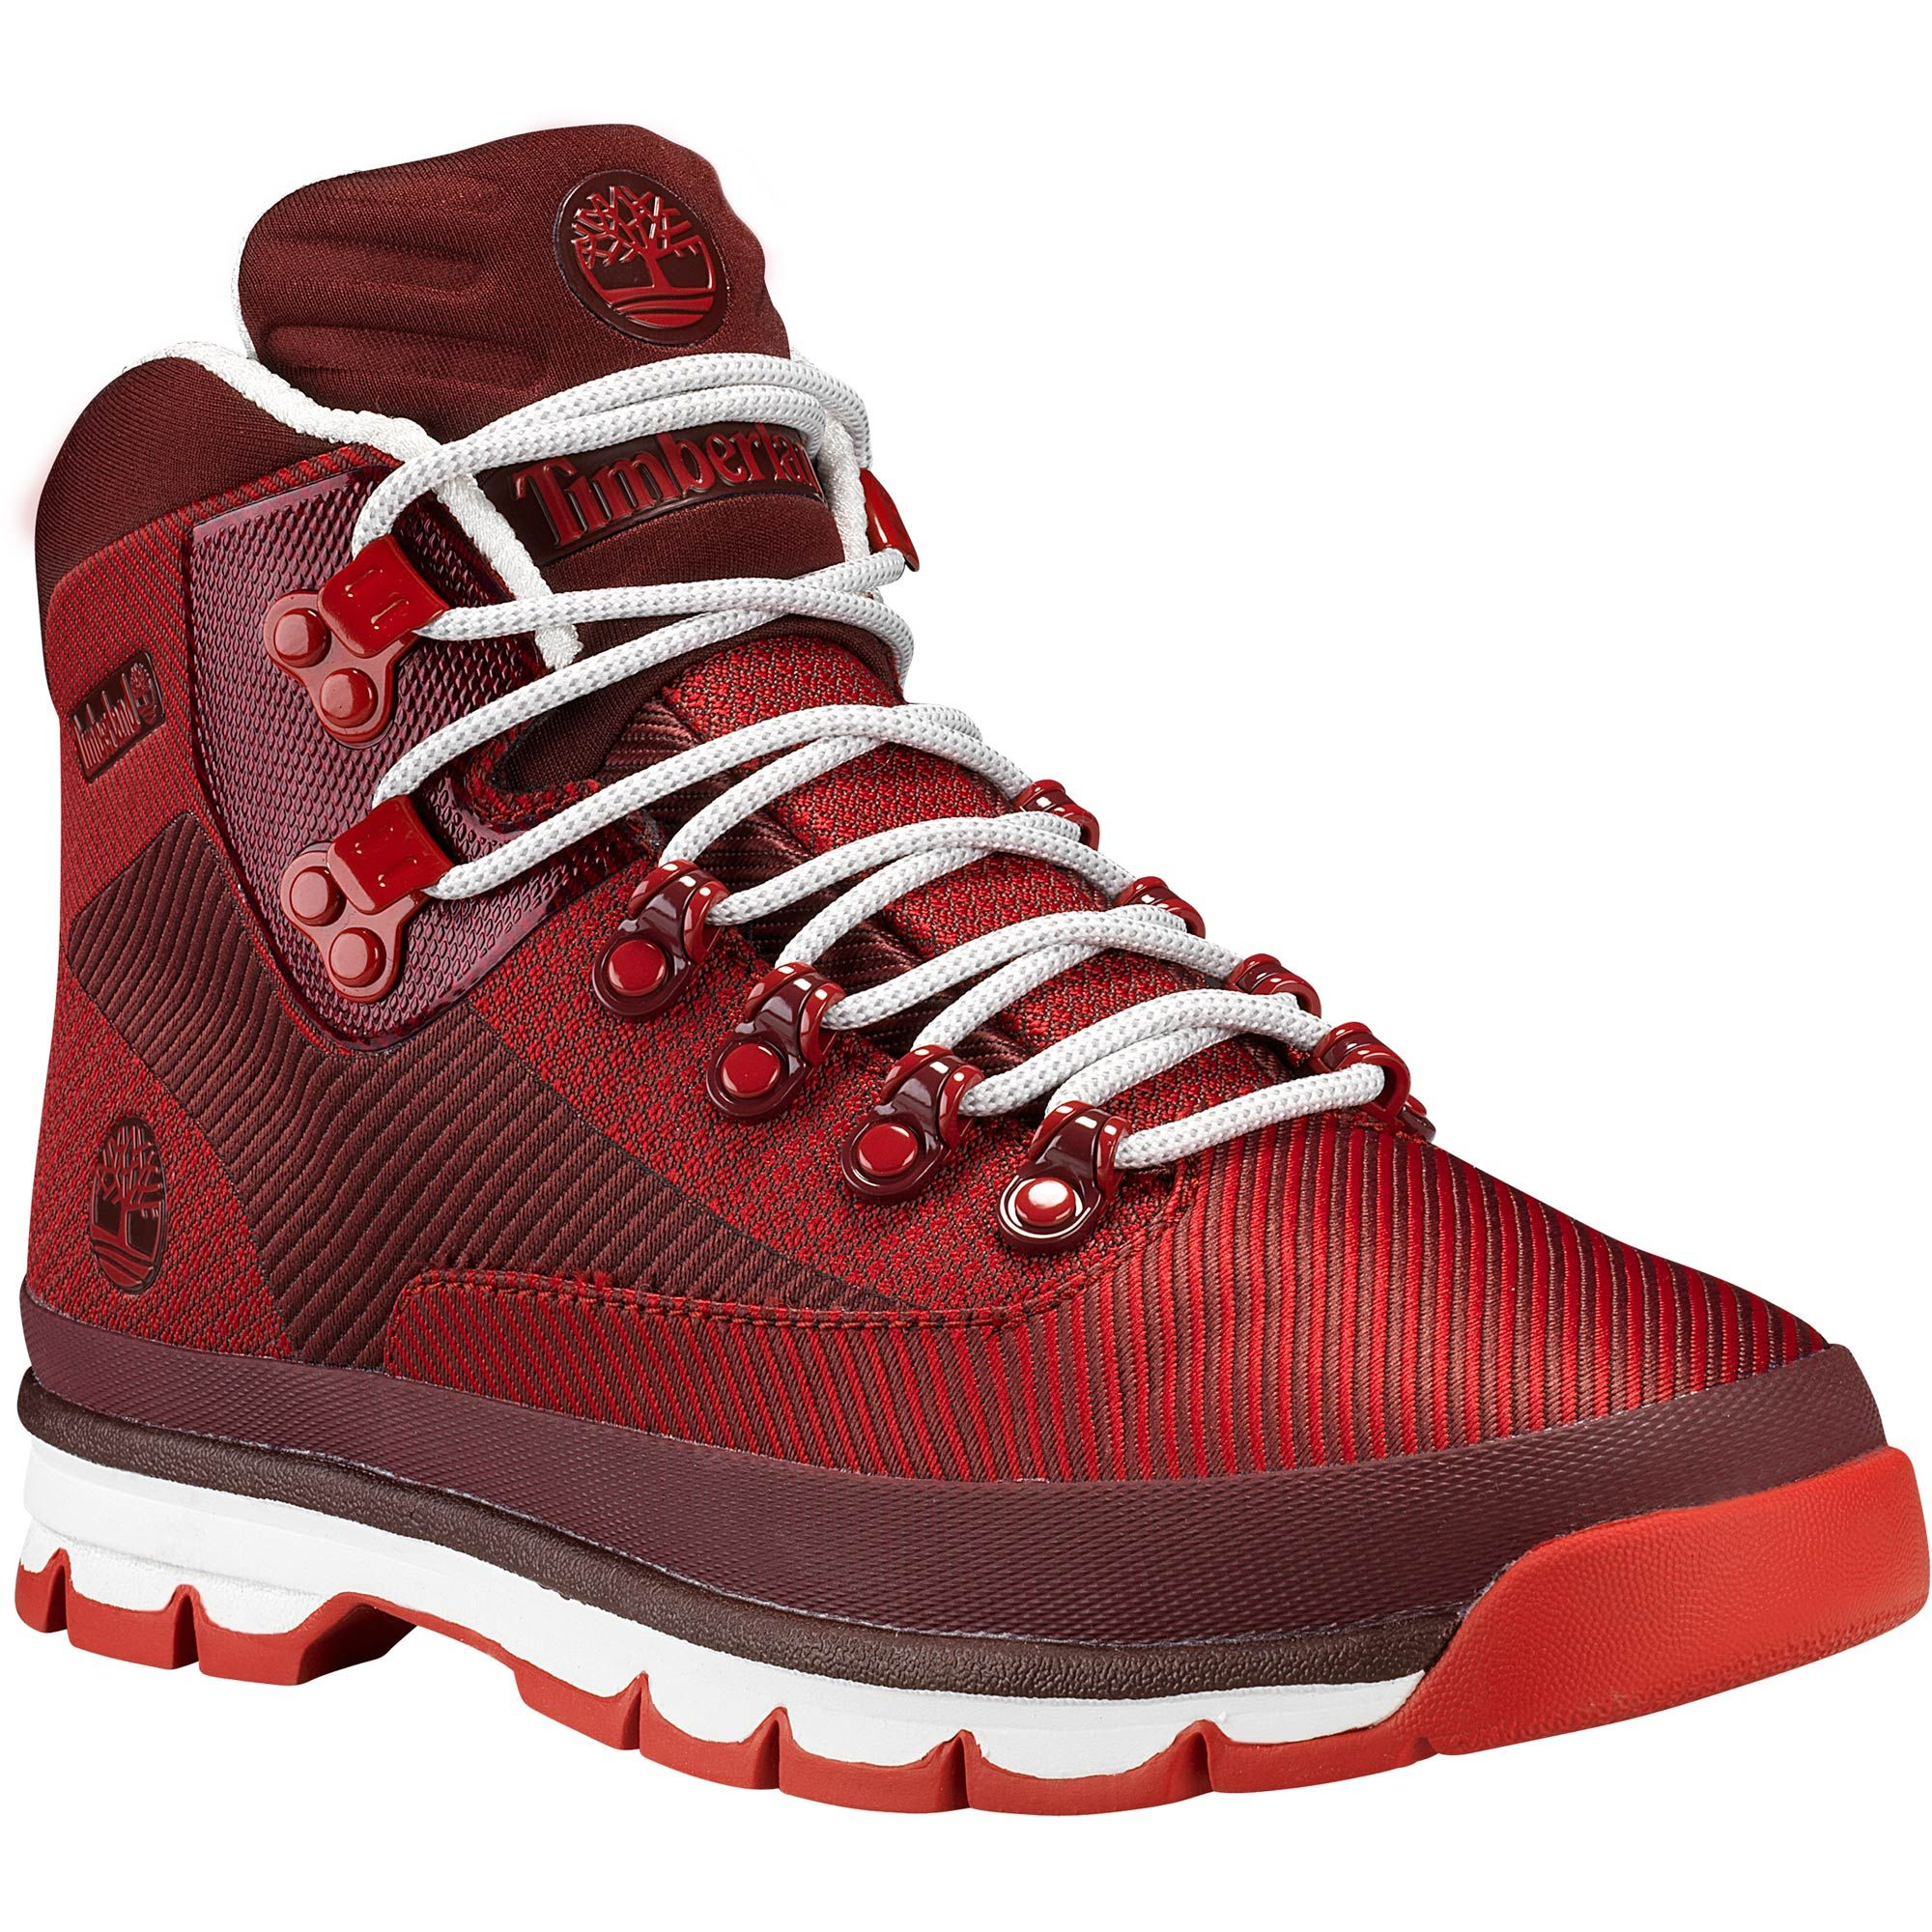 Comenzar Colibrí Arroyo  Timberland Men's Euro Hiker Boots | Timberland boots mens, Timberland euro  hiker, Hiking boots